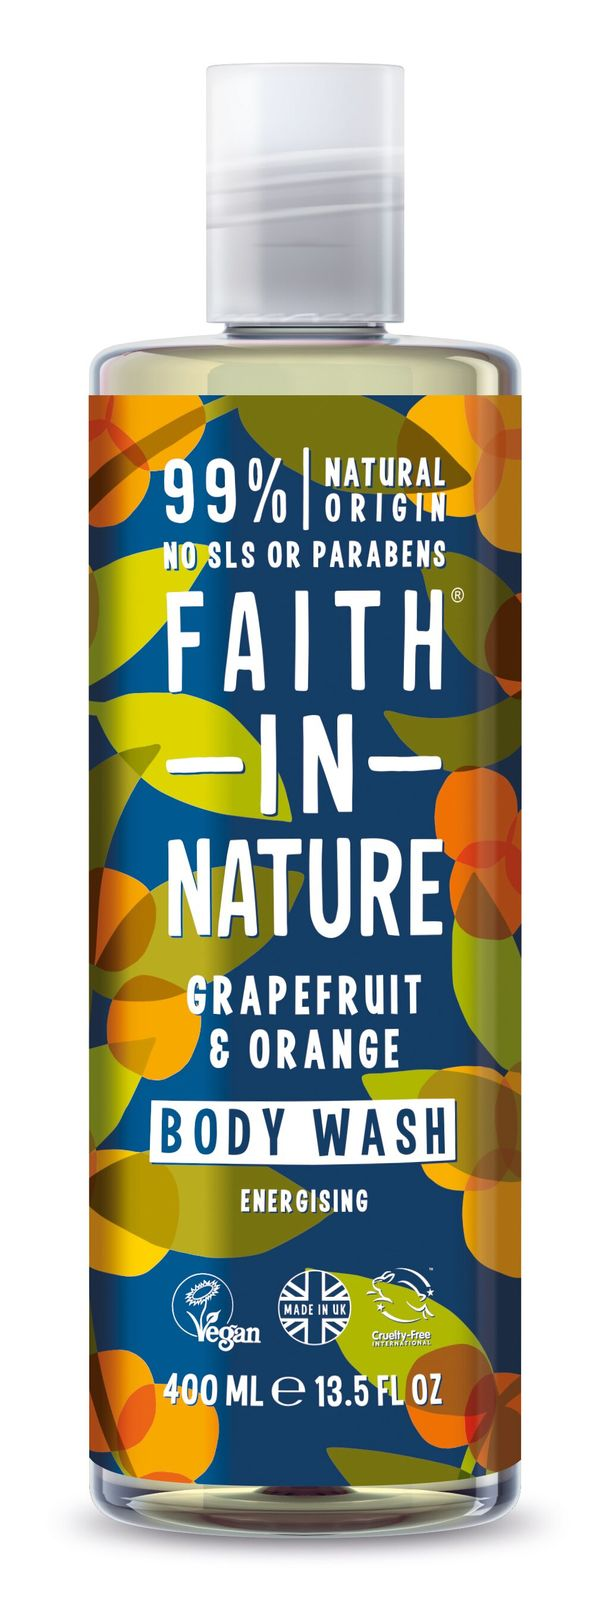 Faith In Nature: Energising Grapefruit & Orange Body Wash (400ml)